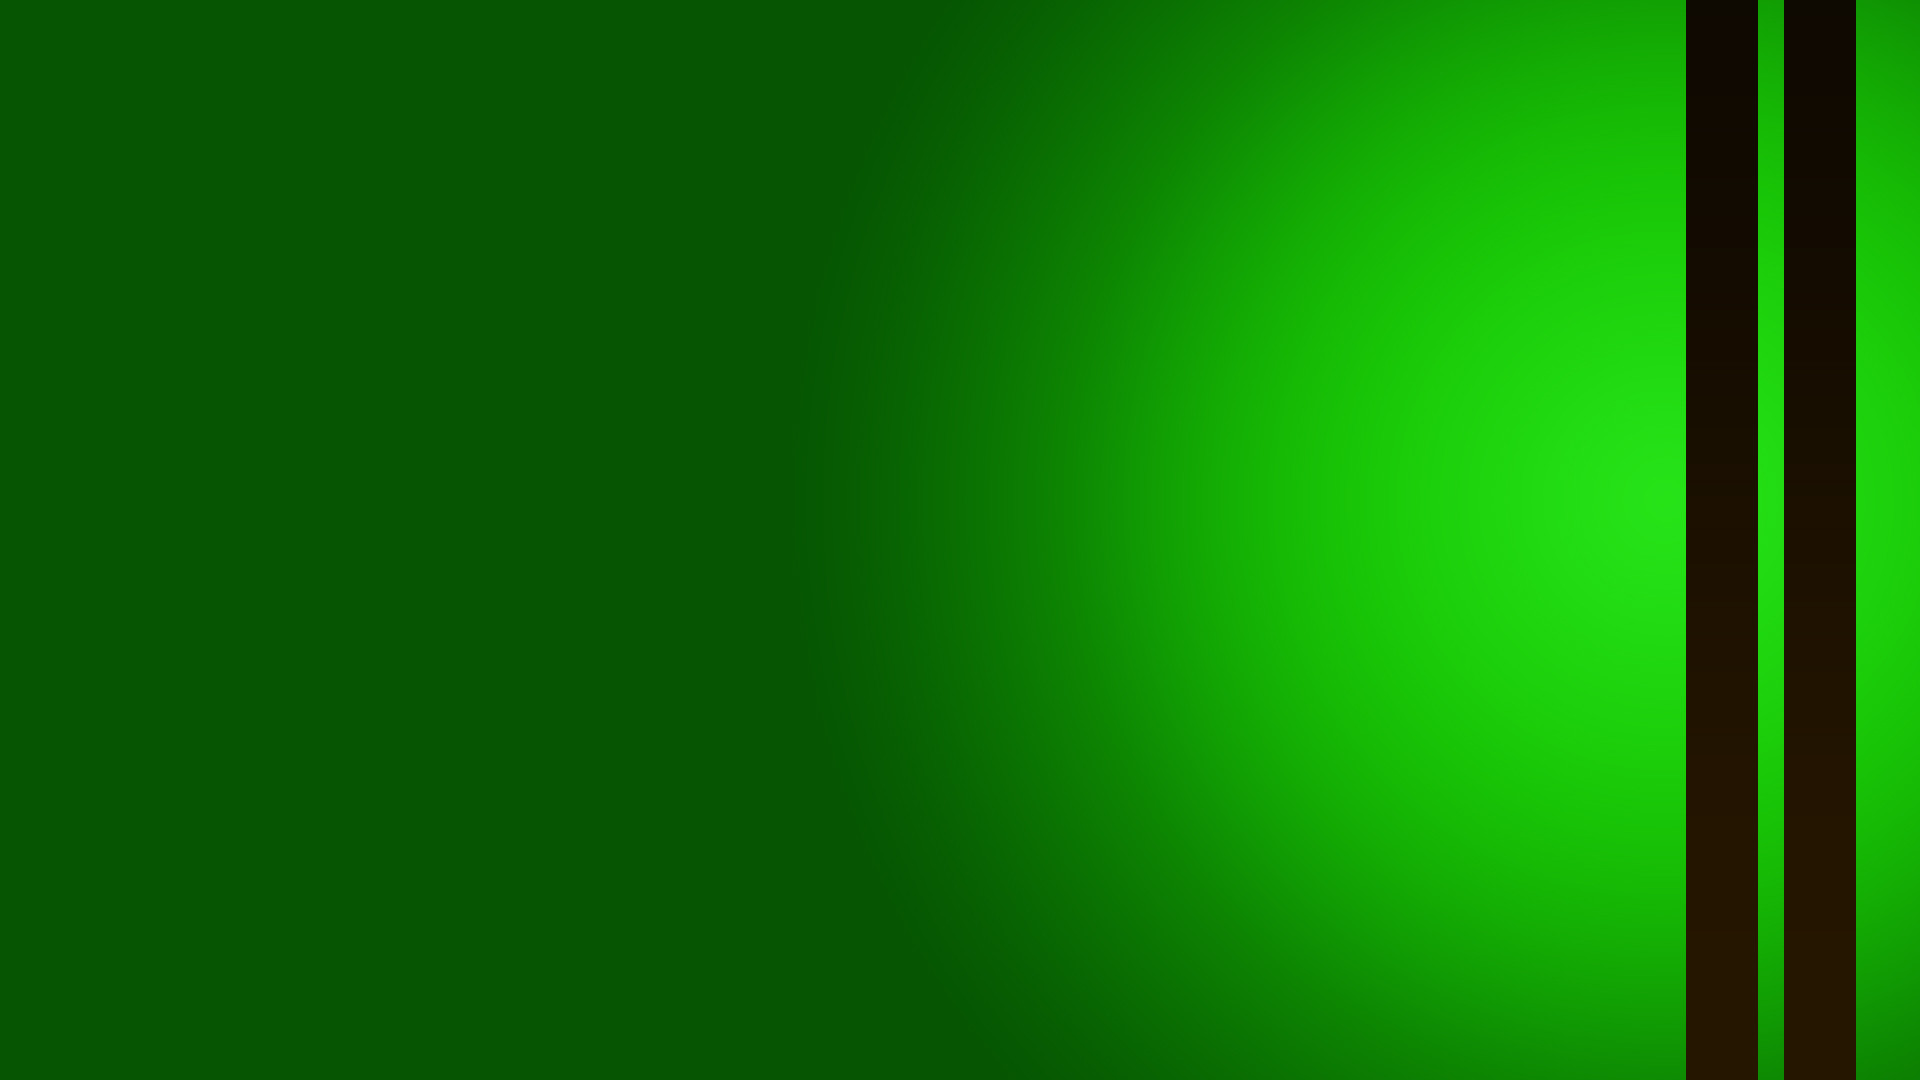 Green HD Wallpapers Group 1920×1080 Green Wallpaper Hd (61 Wallpapers) |  Adorable